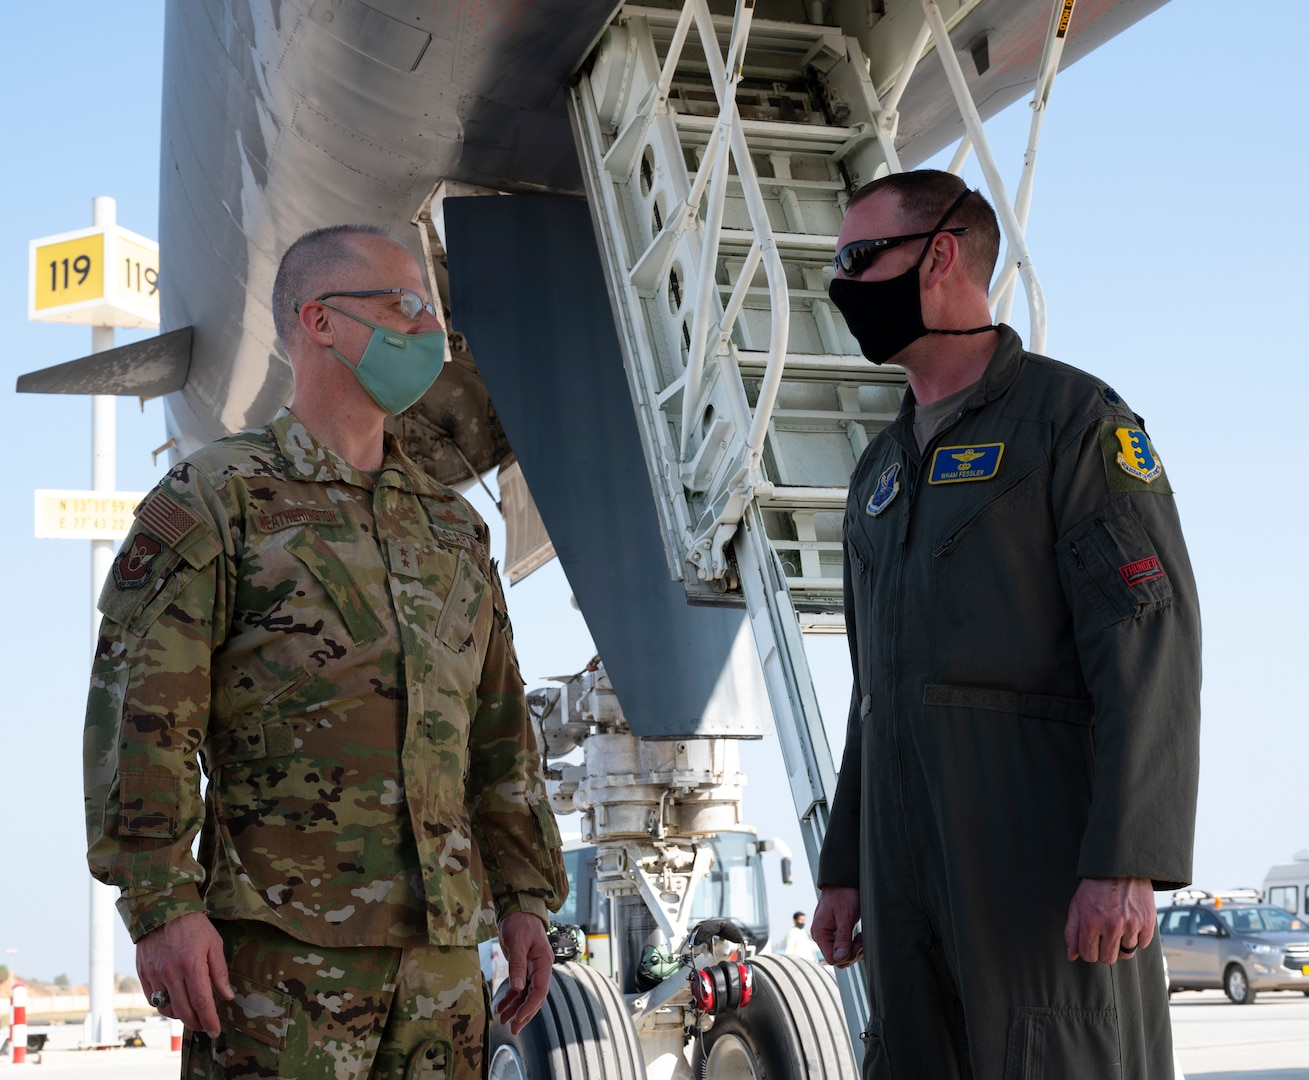 Maj. Gen. Mark Weatherington, the Eighth Air Force commander, greets Lt. Col. Michael Fessler, the 34th Expeditionary Bomb Squadron commander, at Kempegowda International Airport in Bengaluru, India, Feb. 1, 2021. Fessler was part of a four-member crew that flew a B-1B Lancer from Ellsworth Air Force Base, S.D., to India to participate in the Aero India 2021 tradeshow. The non-stop, 26-hour sortie demonstrates the long-range capabilities of the B-1B and its aircrew. (U.S. Air Force photo by Senior Airman Christina Bennett)